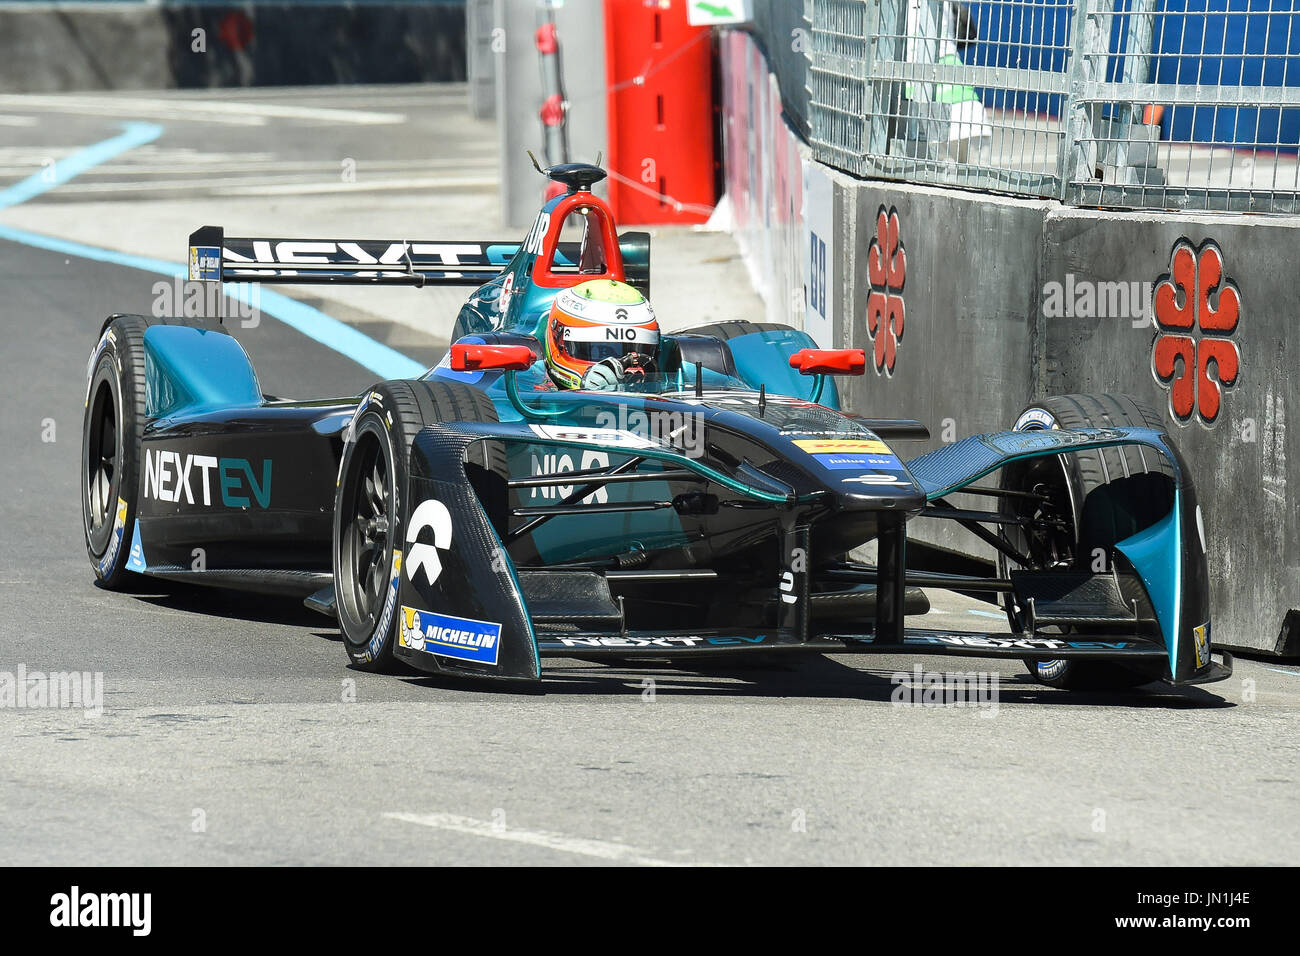 July Nextev Nio Pilot Oliver Turvey During The